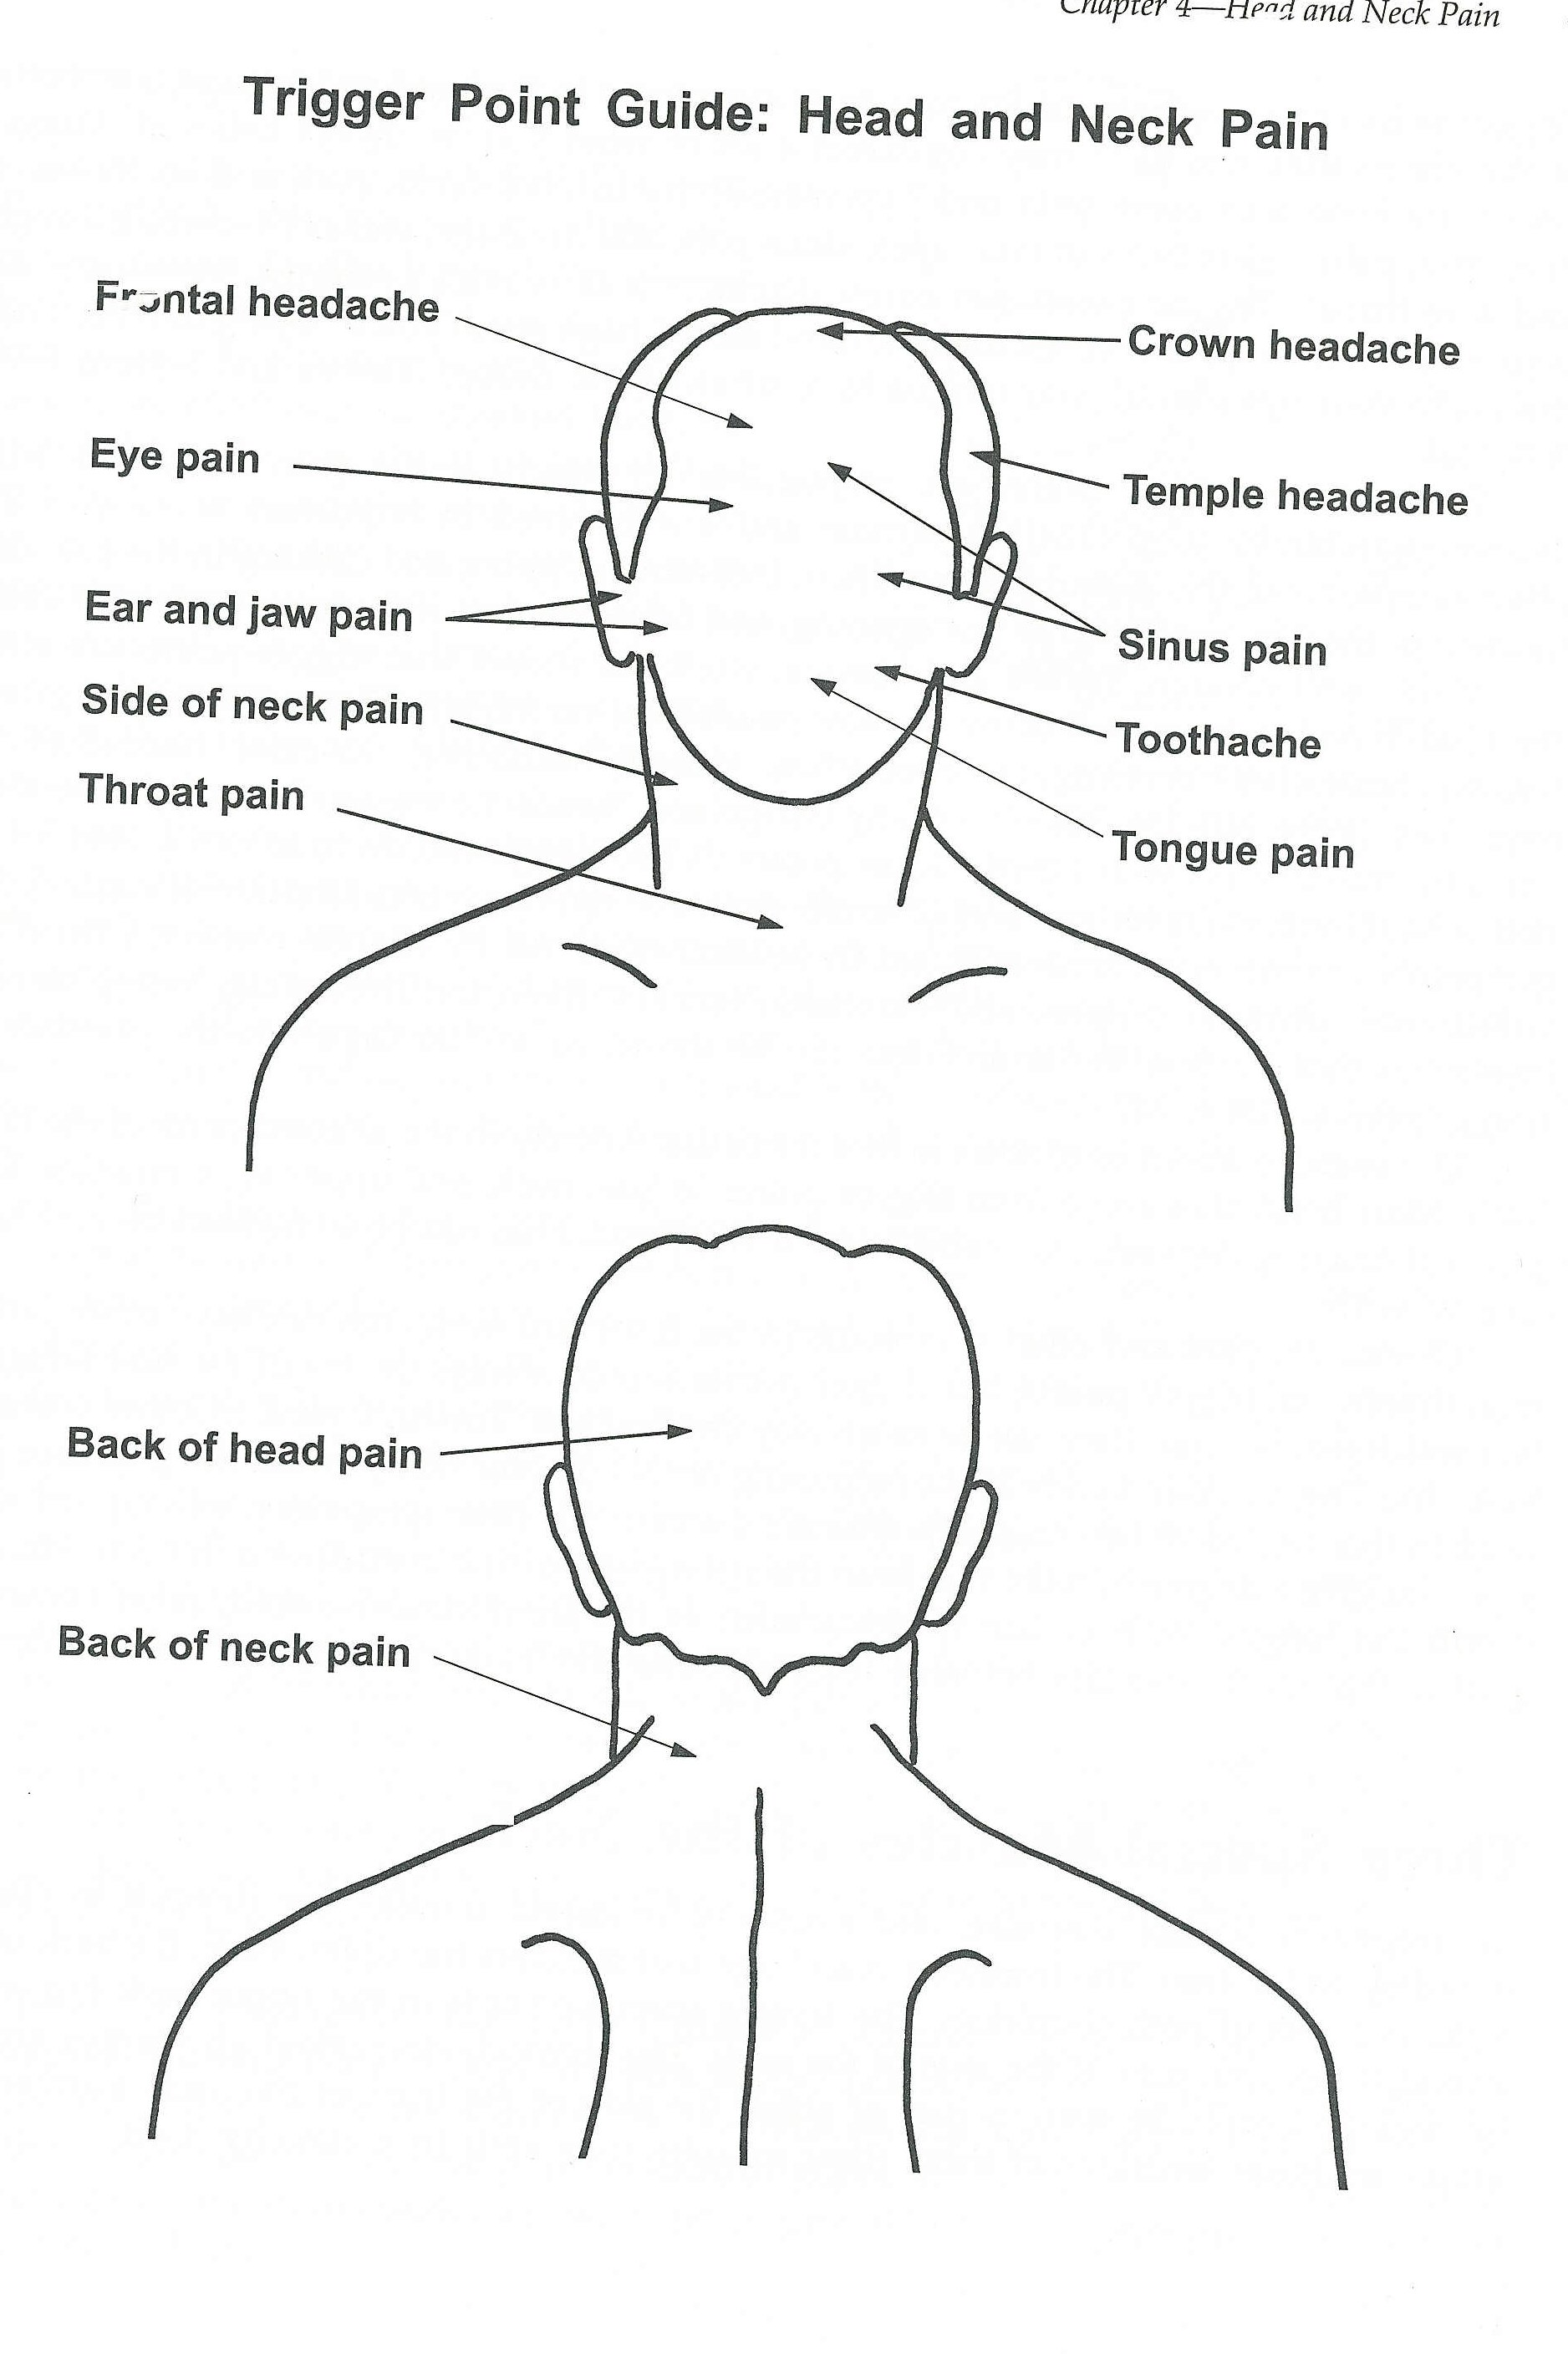 Trigger Point Info